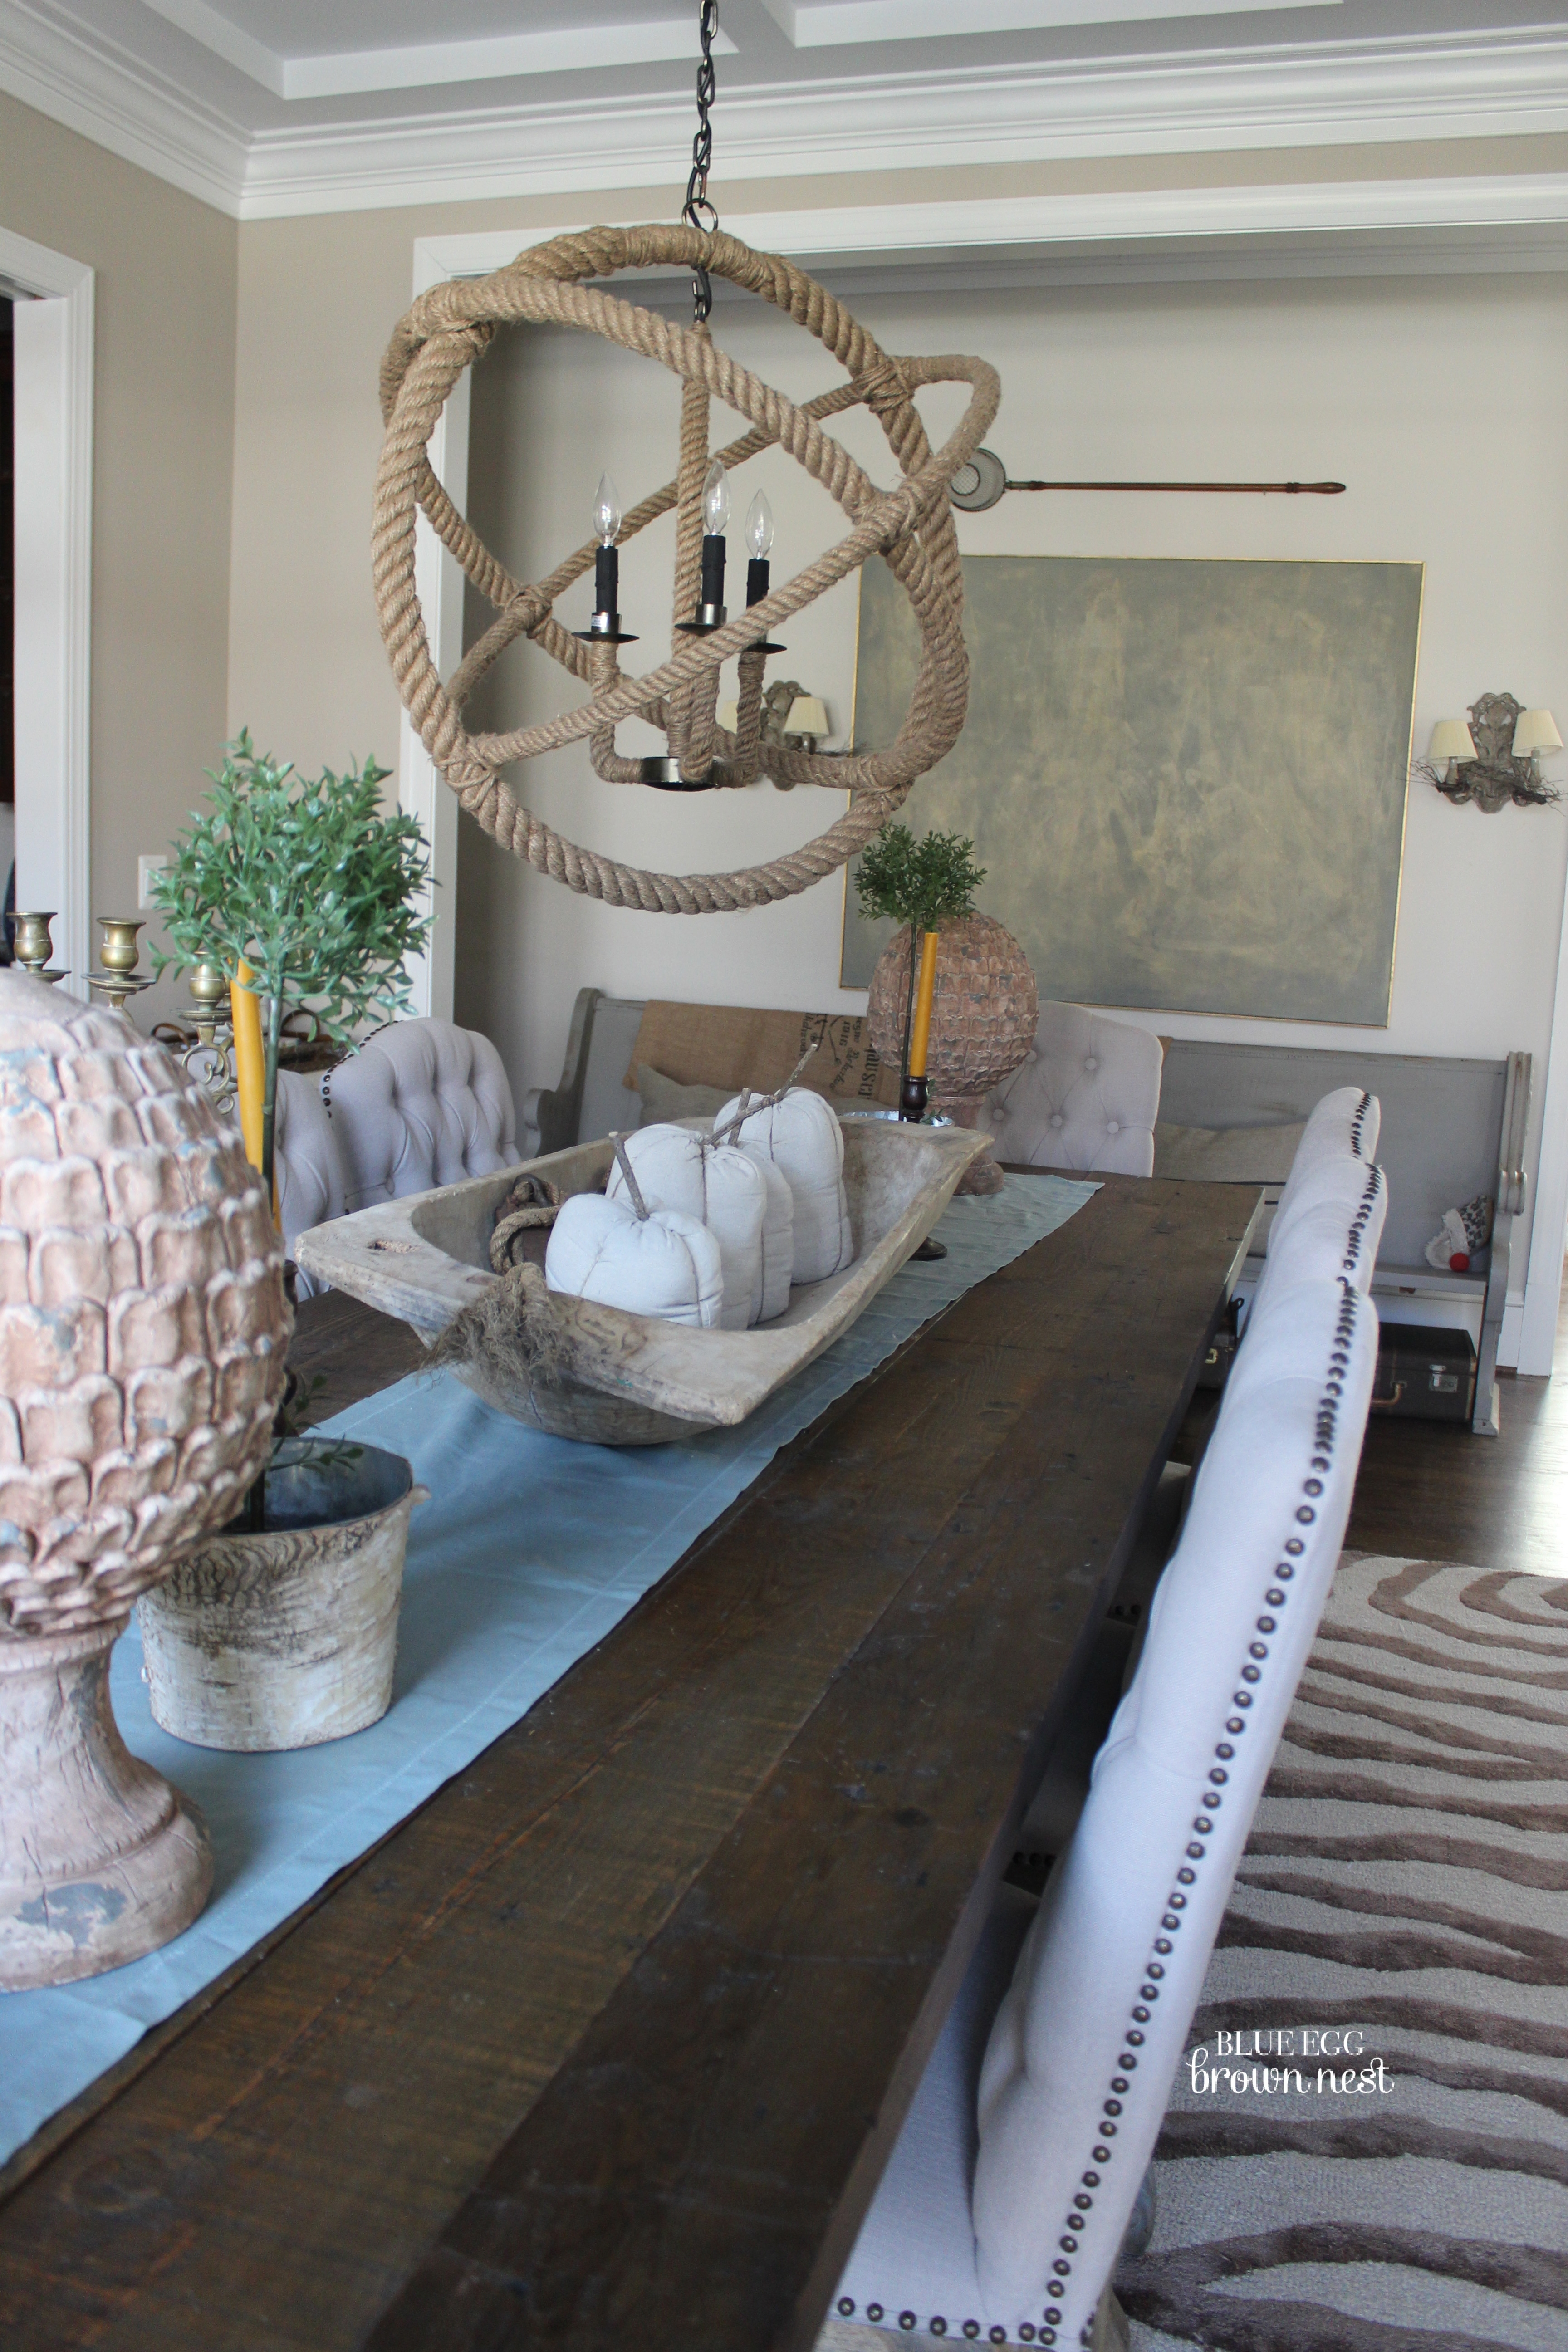 Ashley S Nest Decorating A Dining Room: …Blue Egg Brown Nest Home Colors: Dining Room